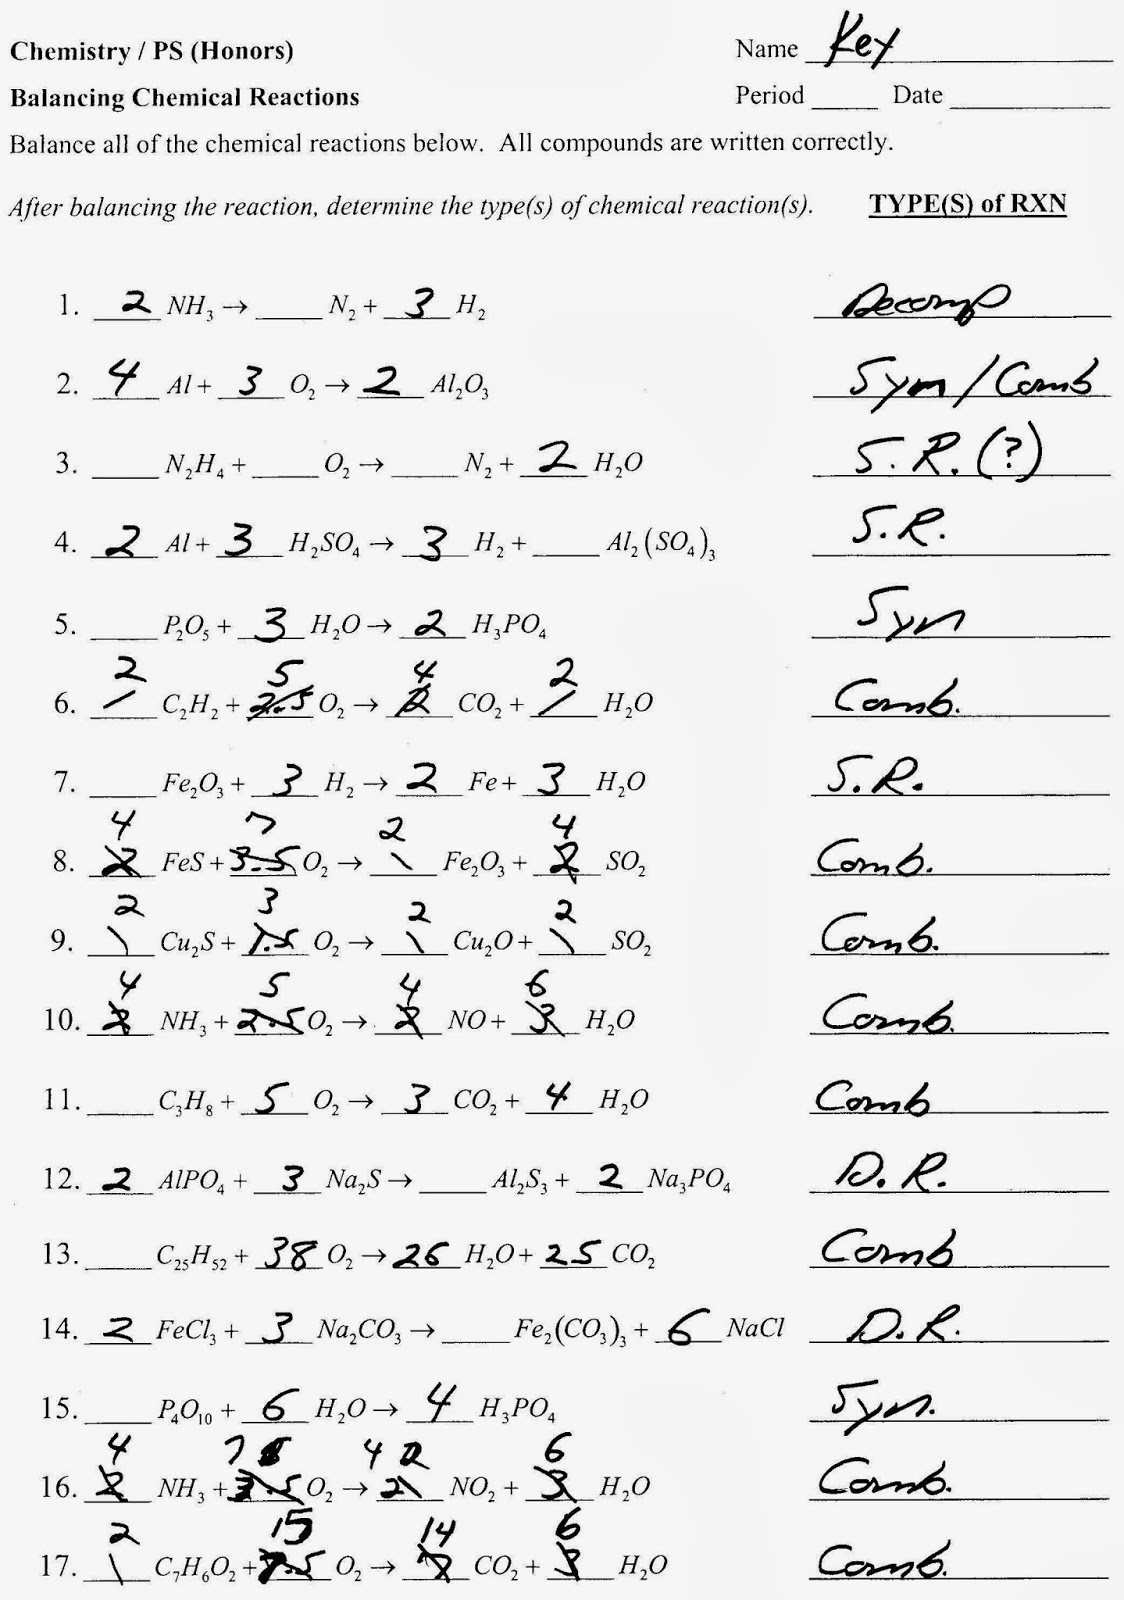 Aldiablosus  Mesmerizing Balancing Chemical Equations Worksheets Balancing Chemical  With Luxury Balancing Chemical Equations Worksheet Answer Key On Chemistry Double With Cool Grade Three English Worksheets Also Making Judgments Worksheets In Addition Grade  Word Problems Worksheets And Tamil Alphabets Worksheets As Well As Gk Worksheets Additionally Skip Counting Worksheets For Second Grade From Letstalkhiphopus With Aldiablosus  Luxury Balancing Chemical Equations Worksheets Balancing Chemical  With Cool Balancing Chemical Equations Worksheet Answer Key On Chemistry Double And Mesmerizing Grade Three English Worksheets Also Making Judgments Worksheets In Addition Grade  Word Problems Worksheets From Letstalkhiphopus